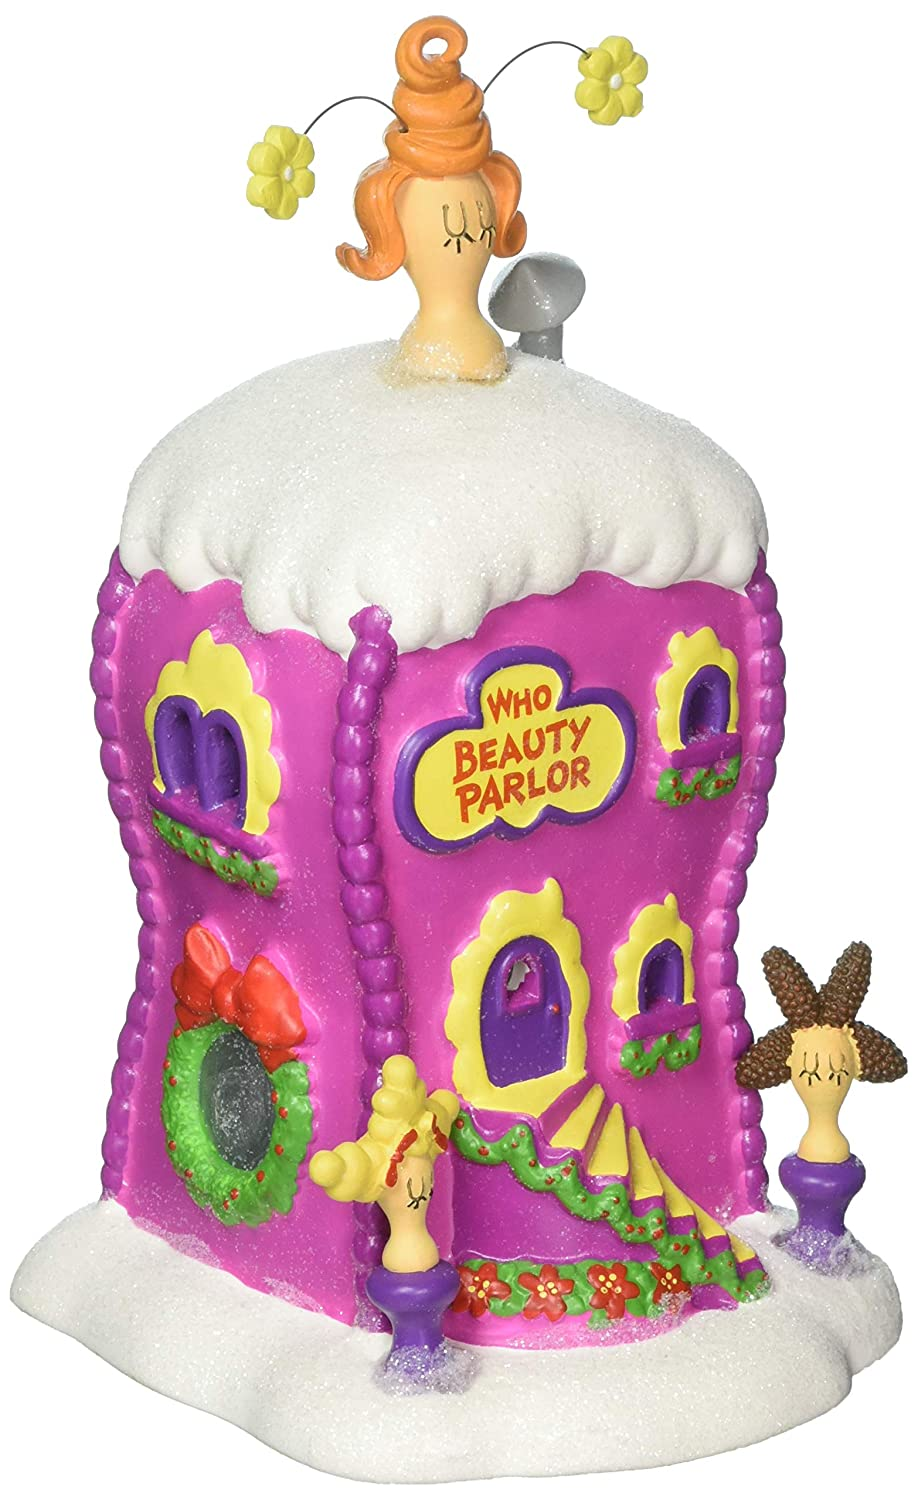 Department 56 Grinch La Boutique Beauty Parlor Village Lit Building, Multicolor 4059422